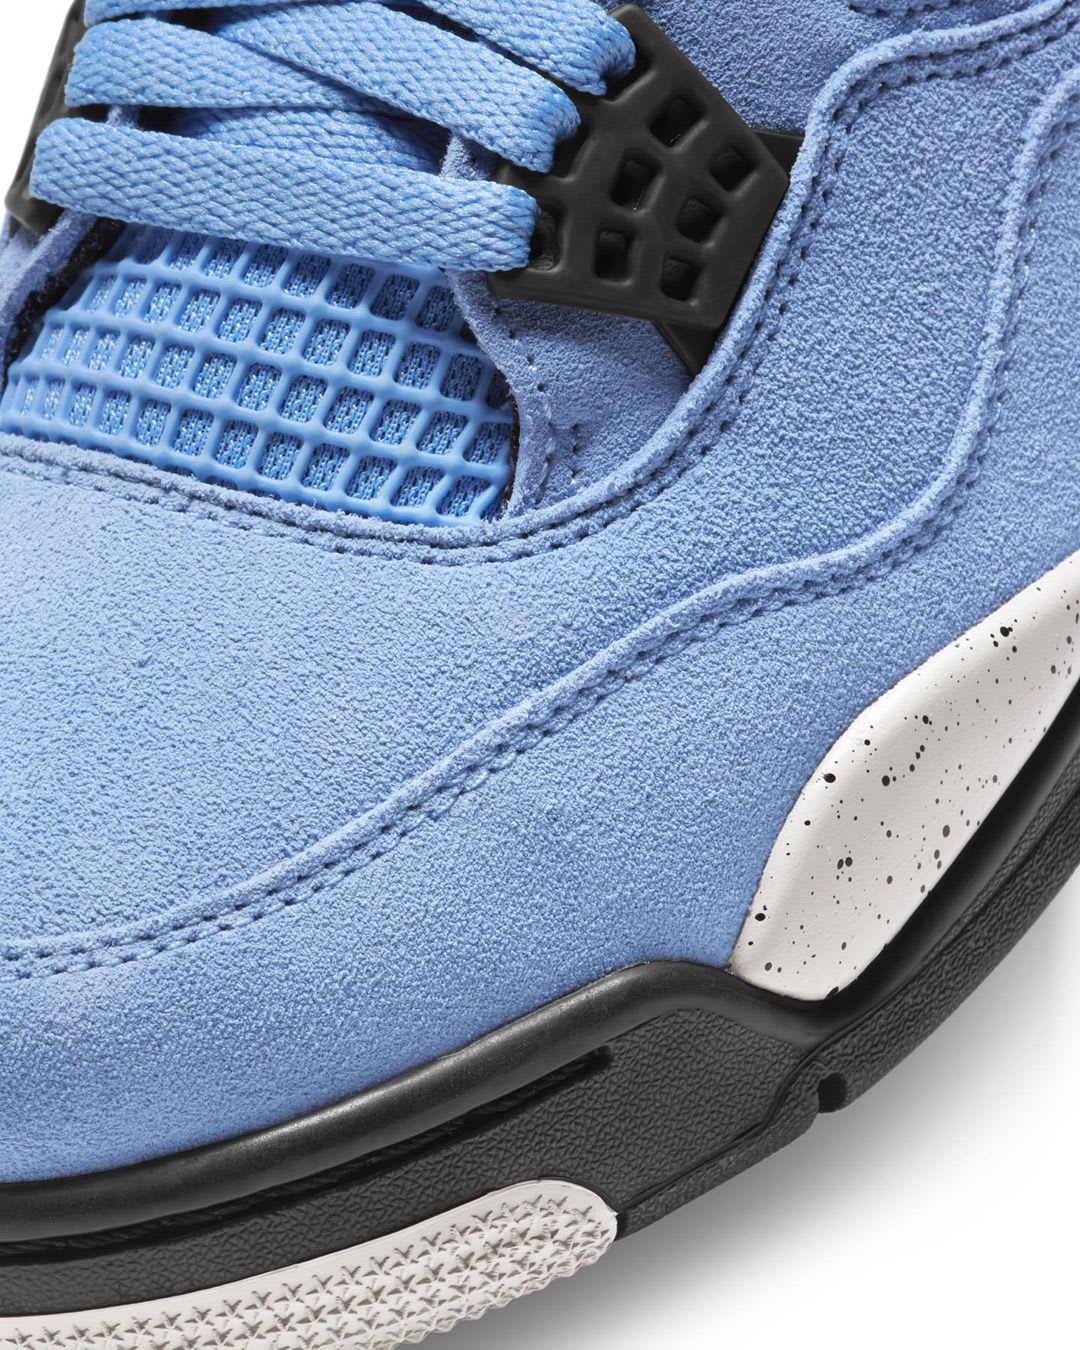 Air Jordan 4 Retro 'University Blue' CT8527-400 Toe